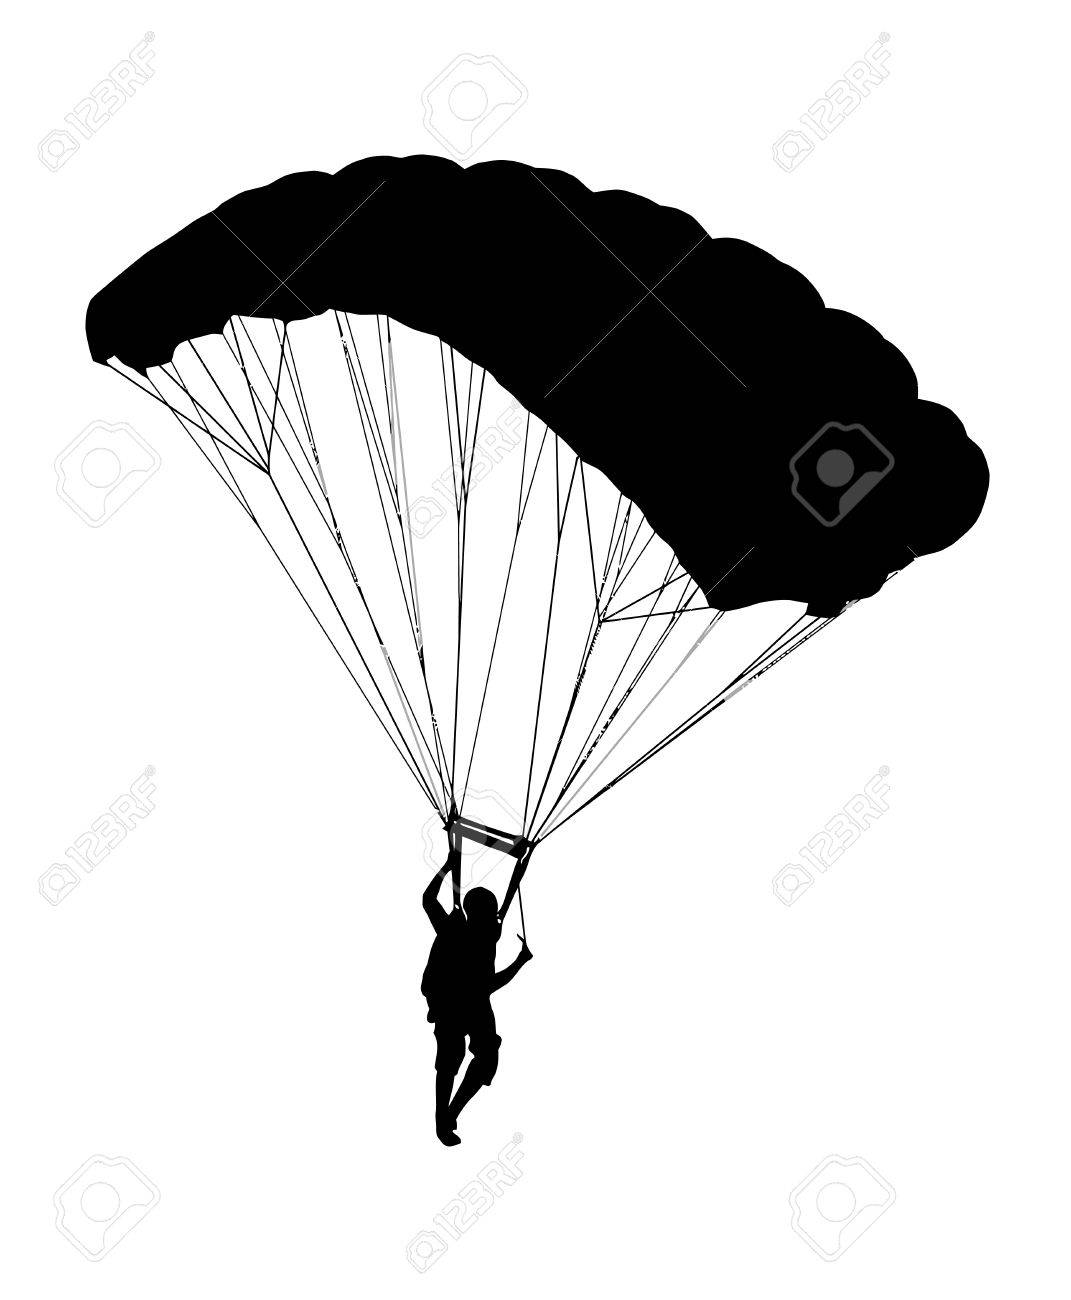 1071x1300 Side Profile Silhouette Of Sky Diver With Open Parachute Landing